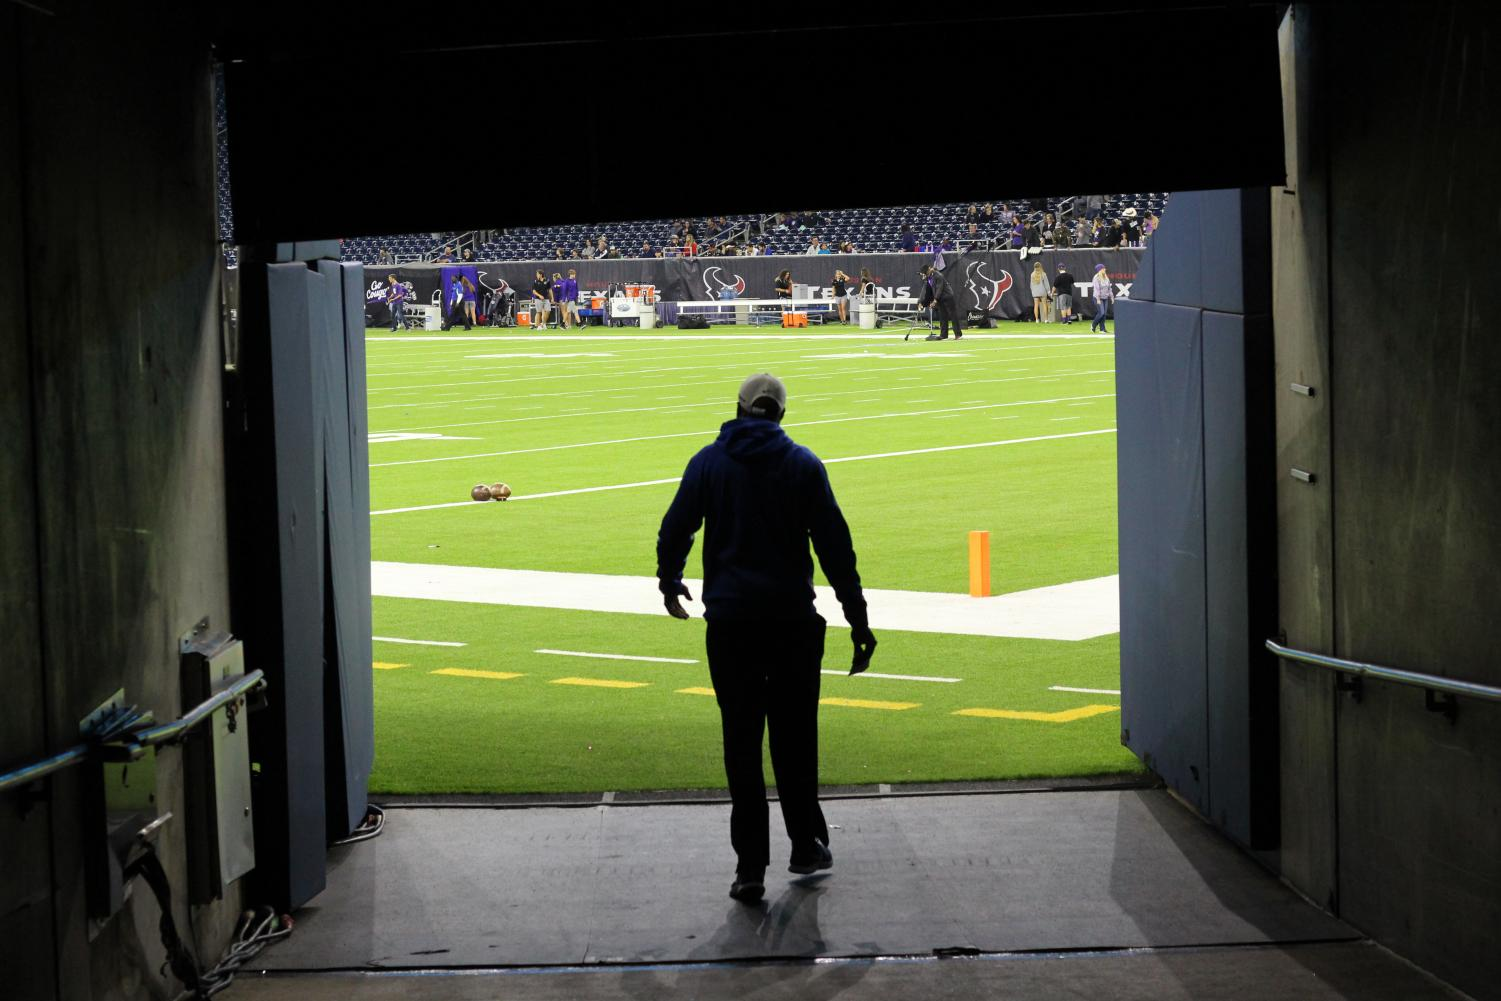 Taylor walks out on to the field at NRG Stadium where the Knights played in the 5A Divsion 2 semifinals. Photo by Madison Olsen.